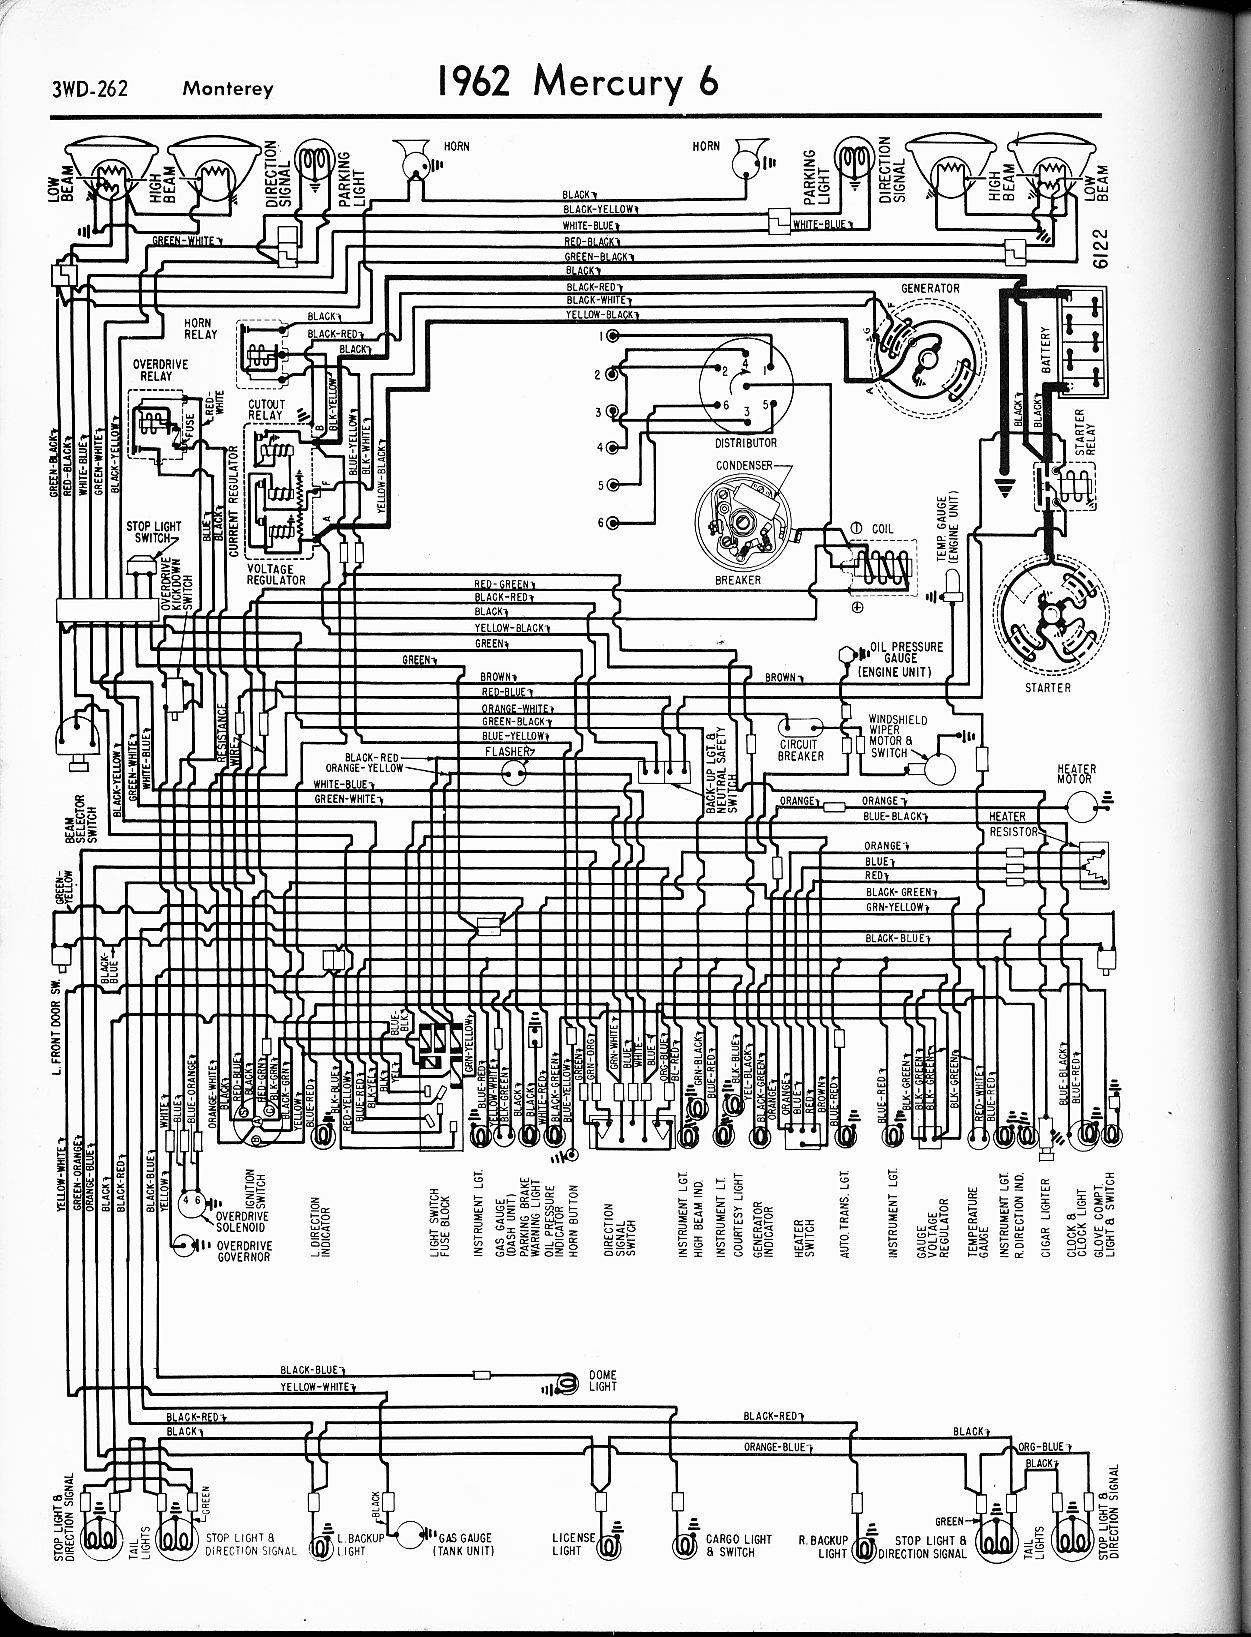 hight resolution of 1966 newport wiring diagram online wiring diagram1966 chrysler newport wiring diagram best wiring library1962 mercury comet